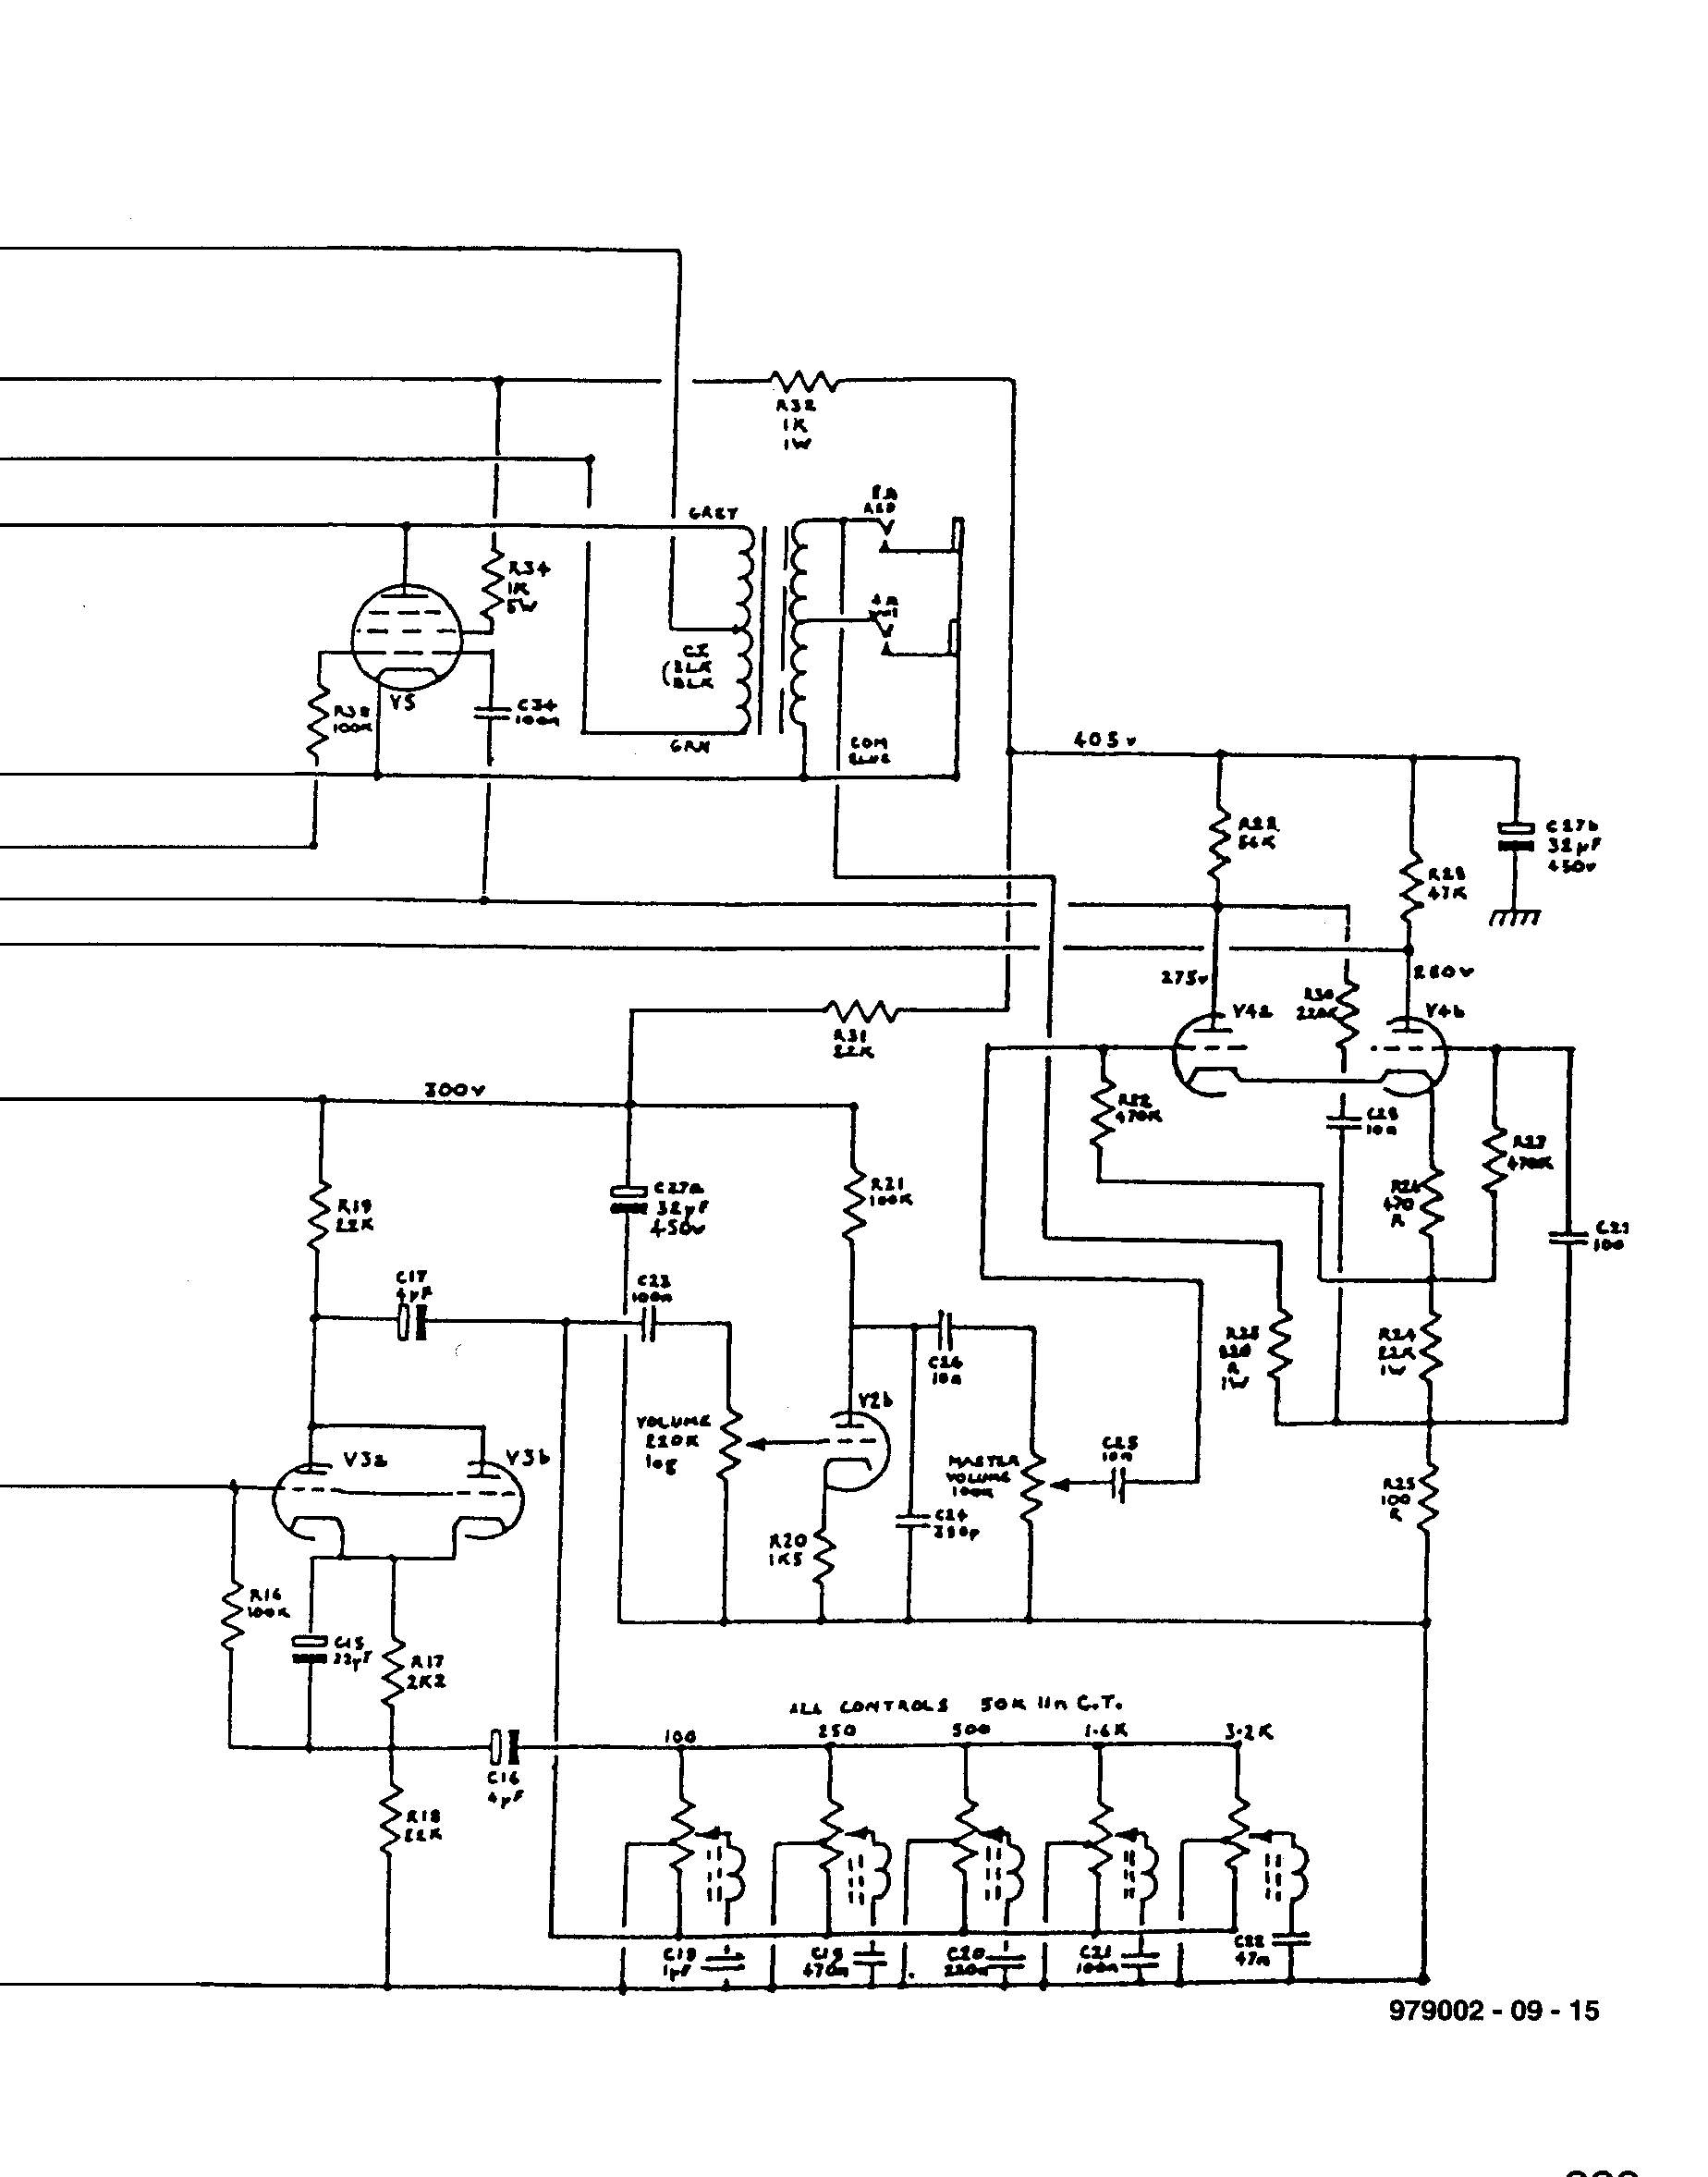 peavey 2 on footswitch wiring diagram peavey predator wiring diagram elsavadorla